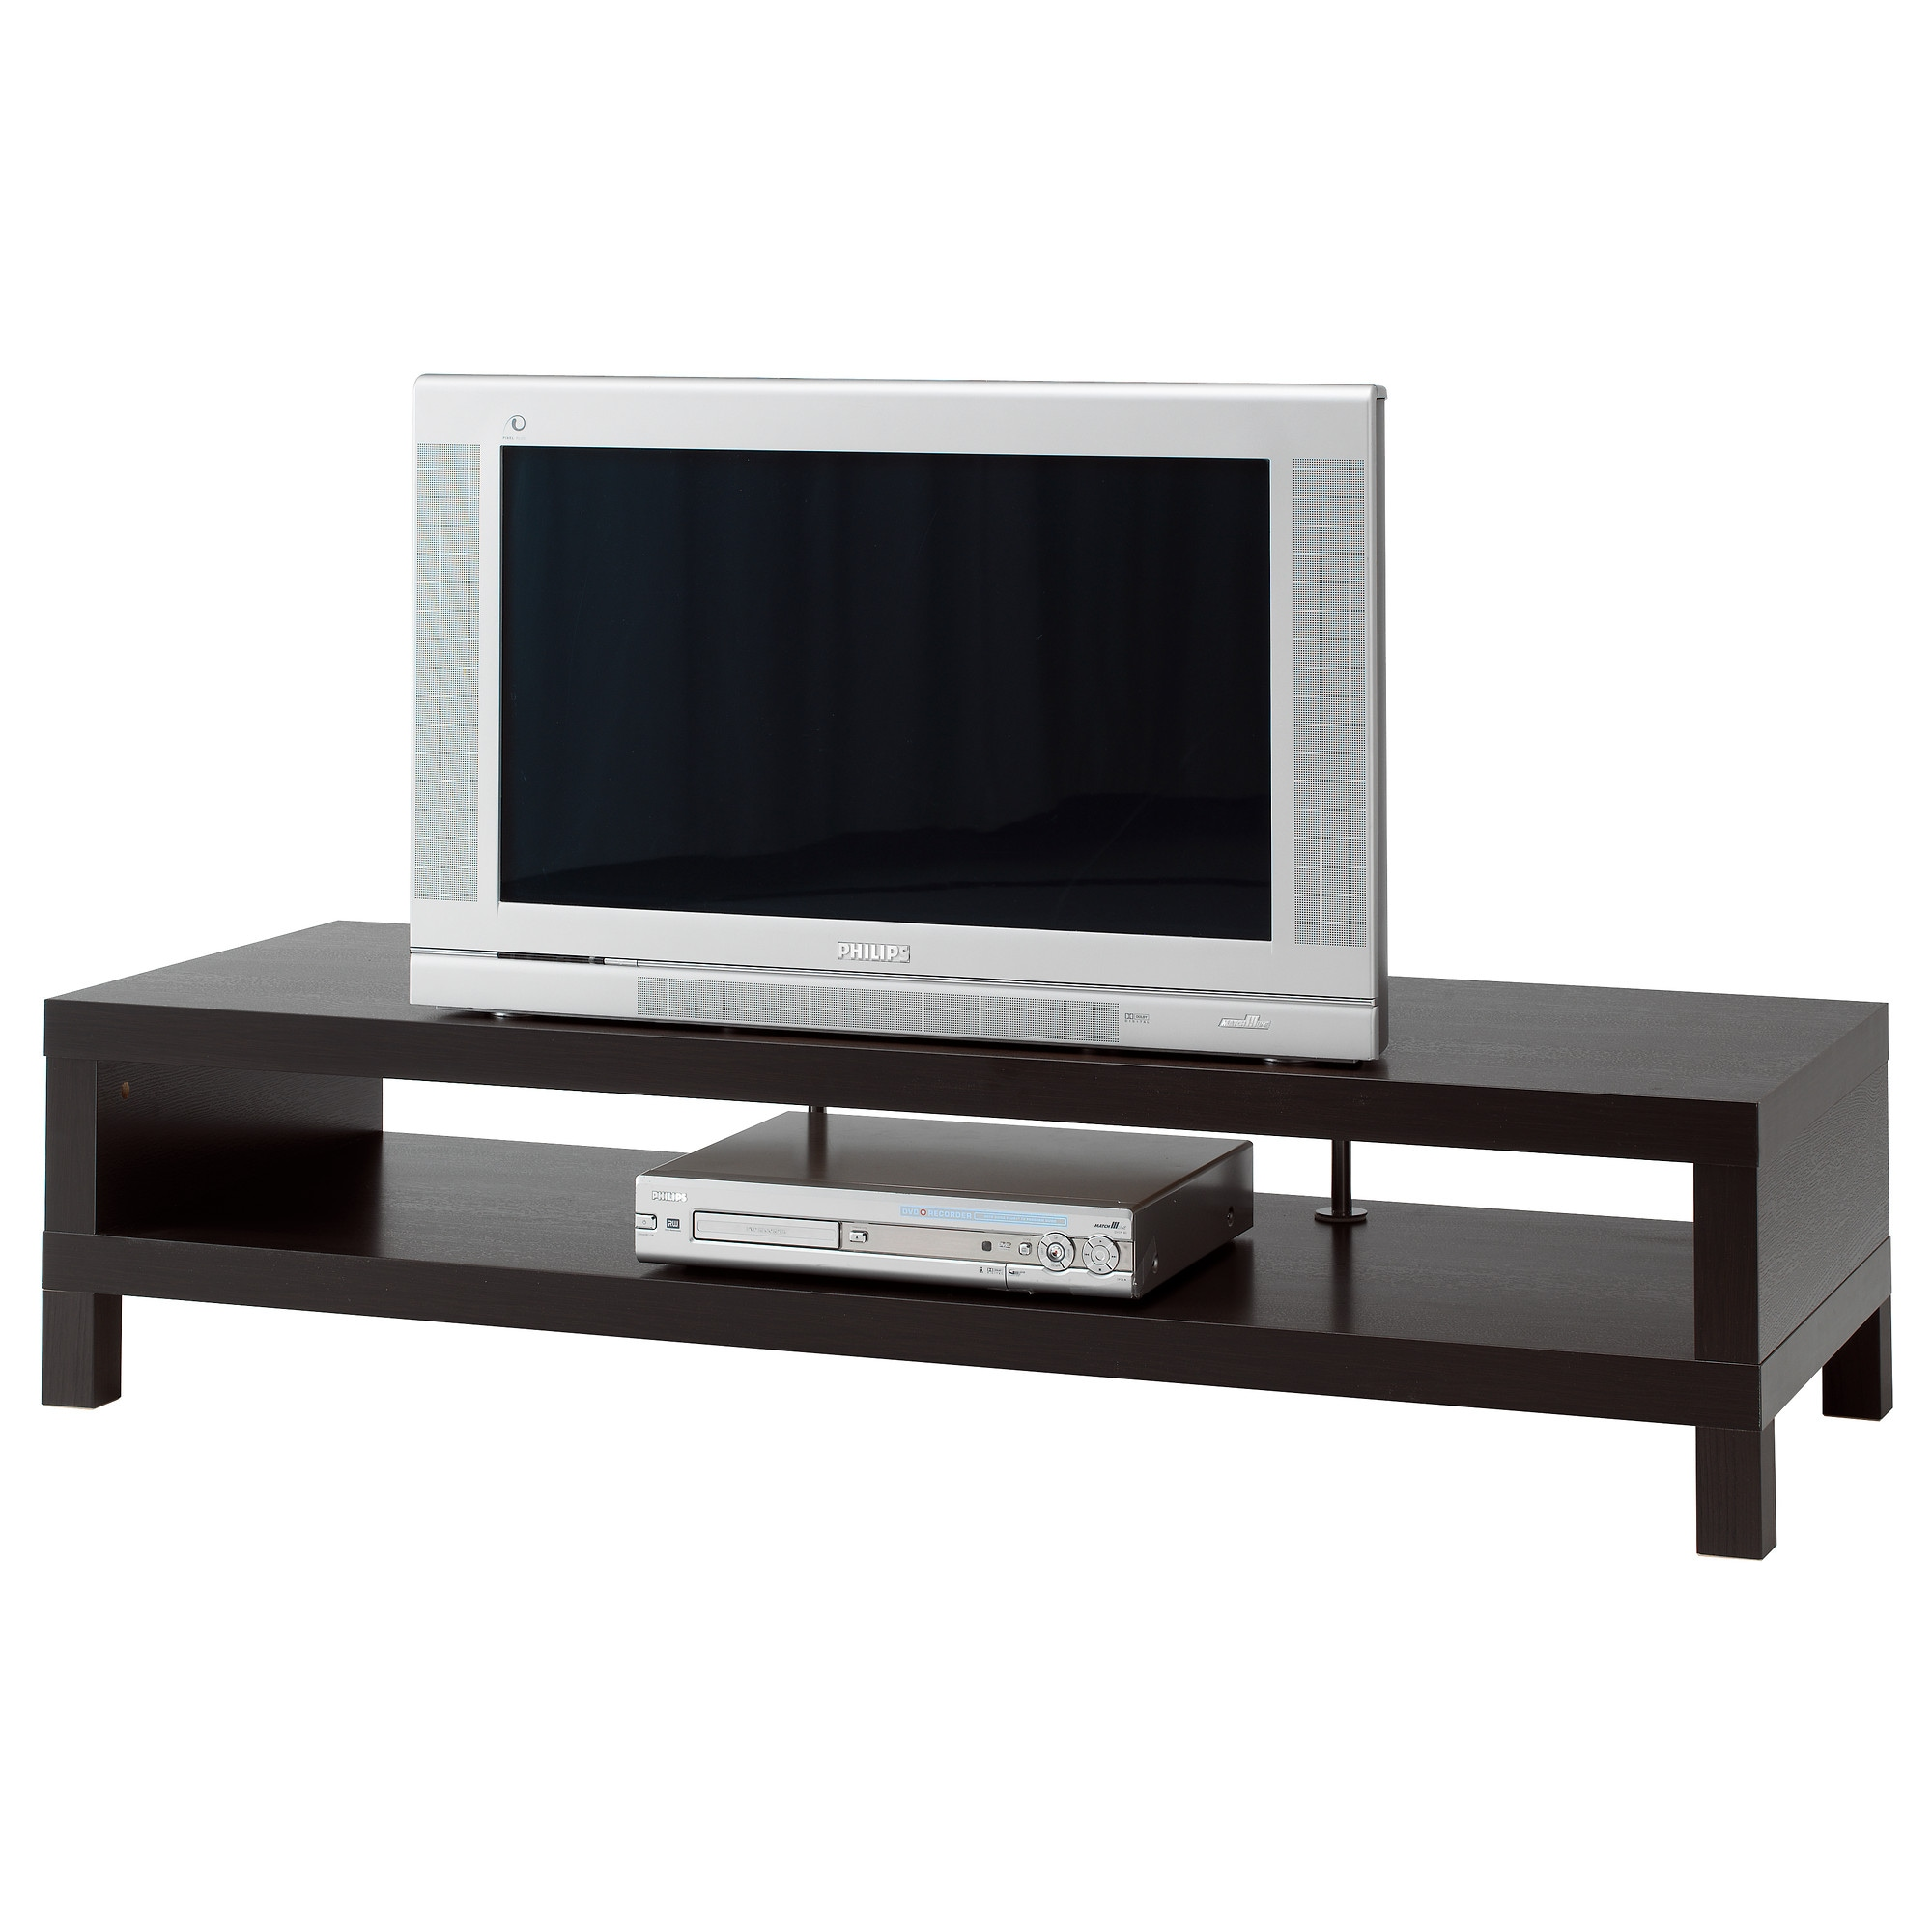 LACK TV unit IKEA